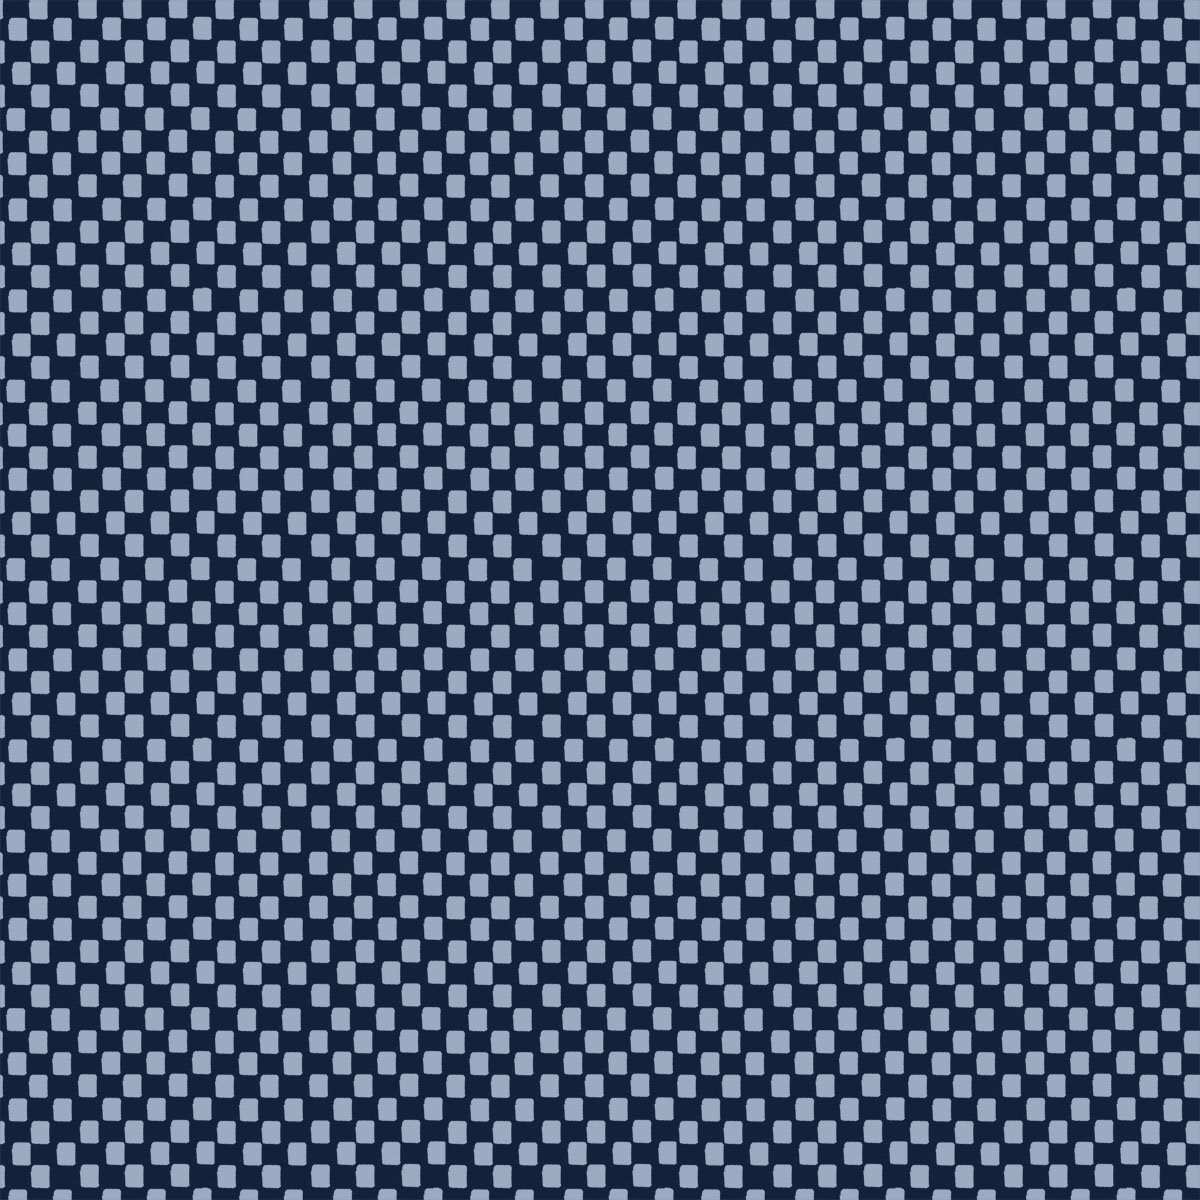 Checkers - Navy Wildwood - Rifle Paper Co.